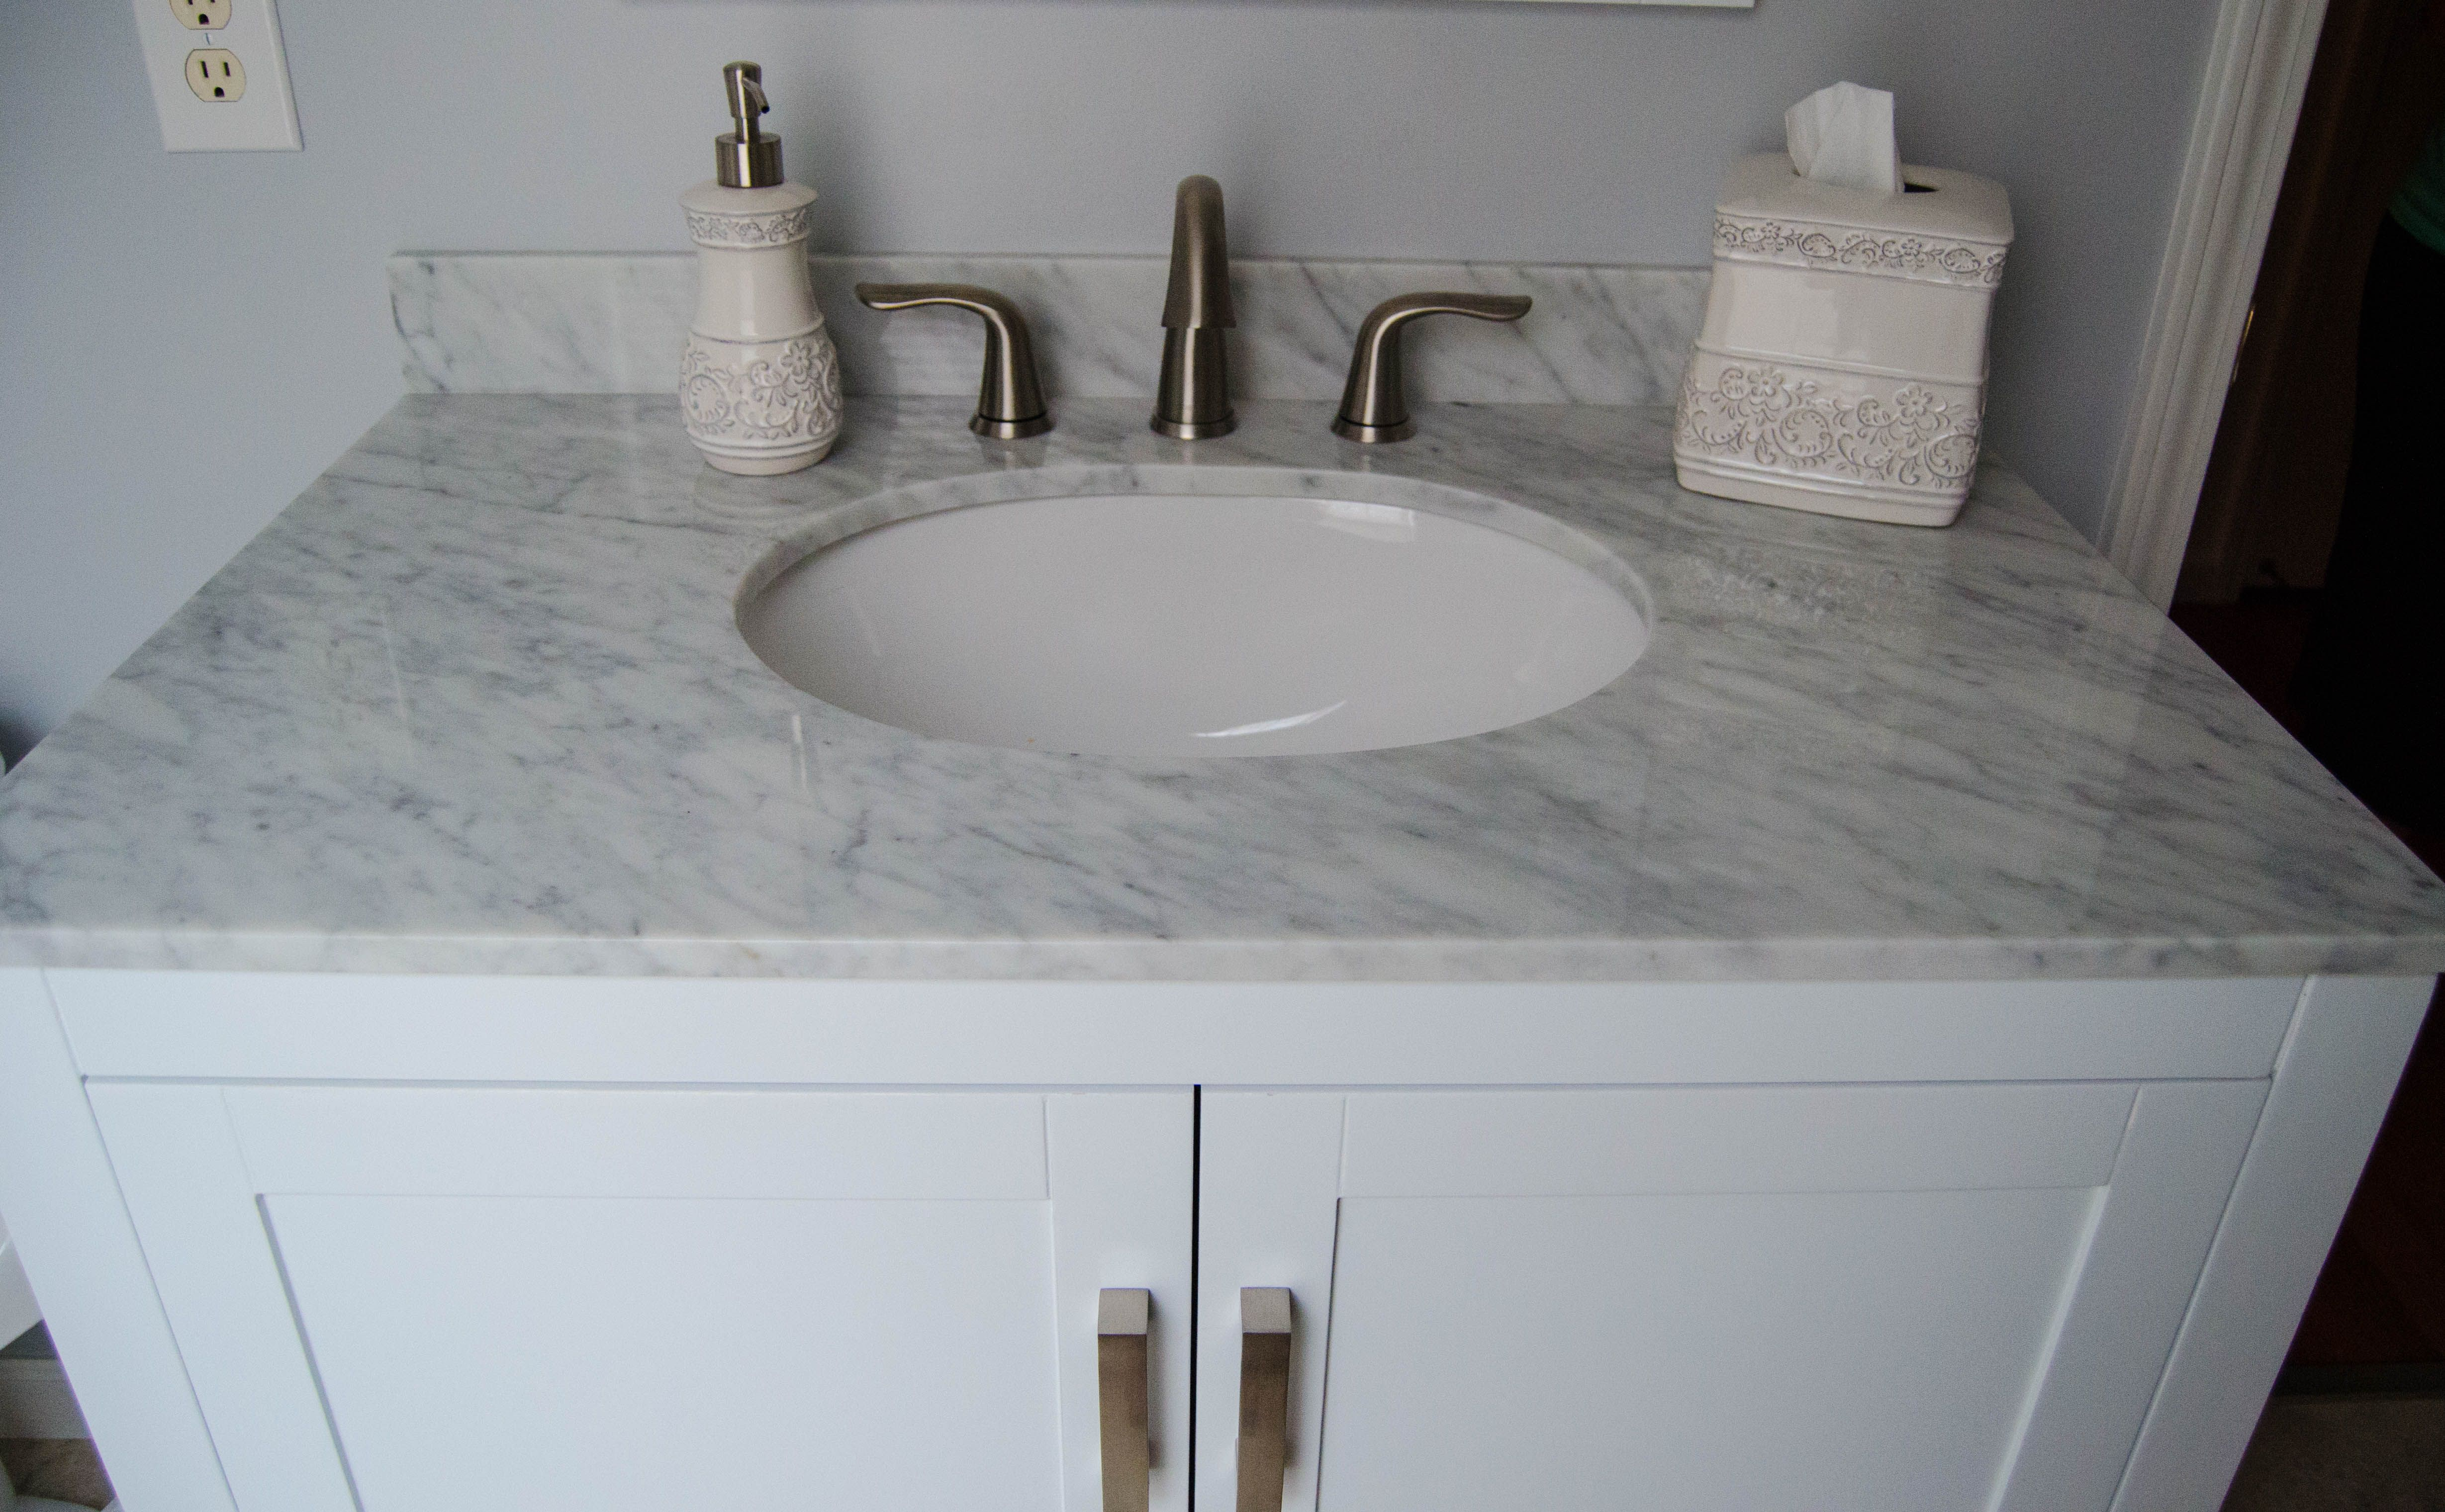 Stainless Steel Delta Faucet Granite Countertop Really Update This Vanity